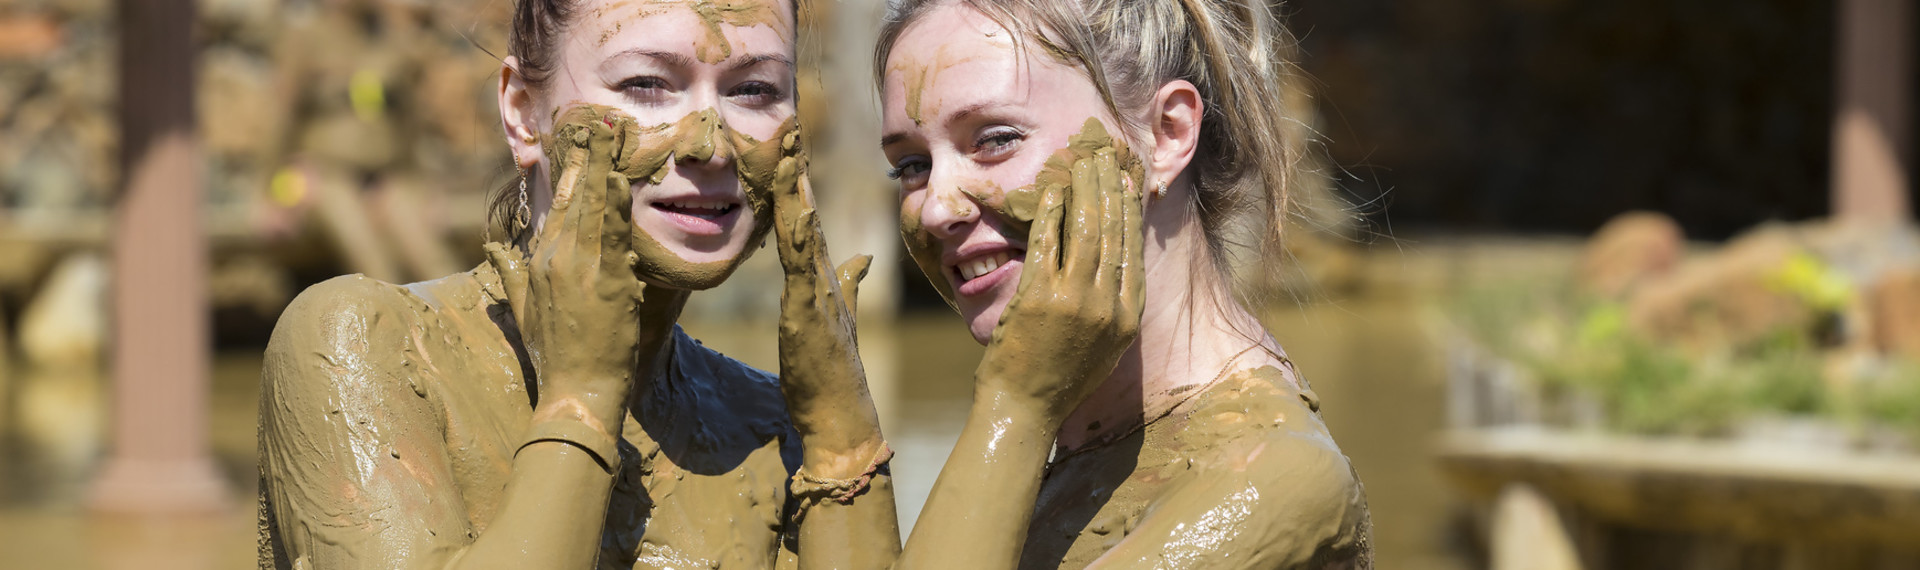 Bratislava Babes In The Mud image